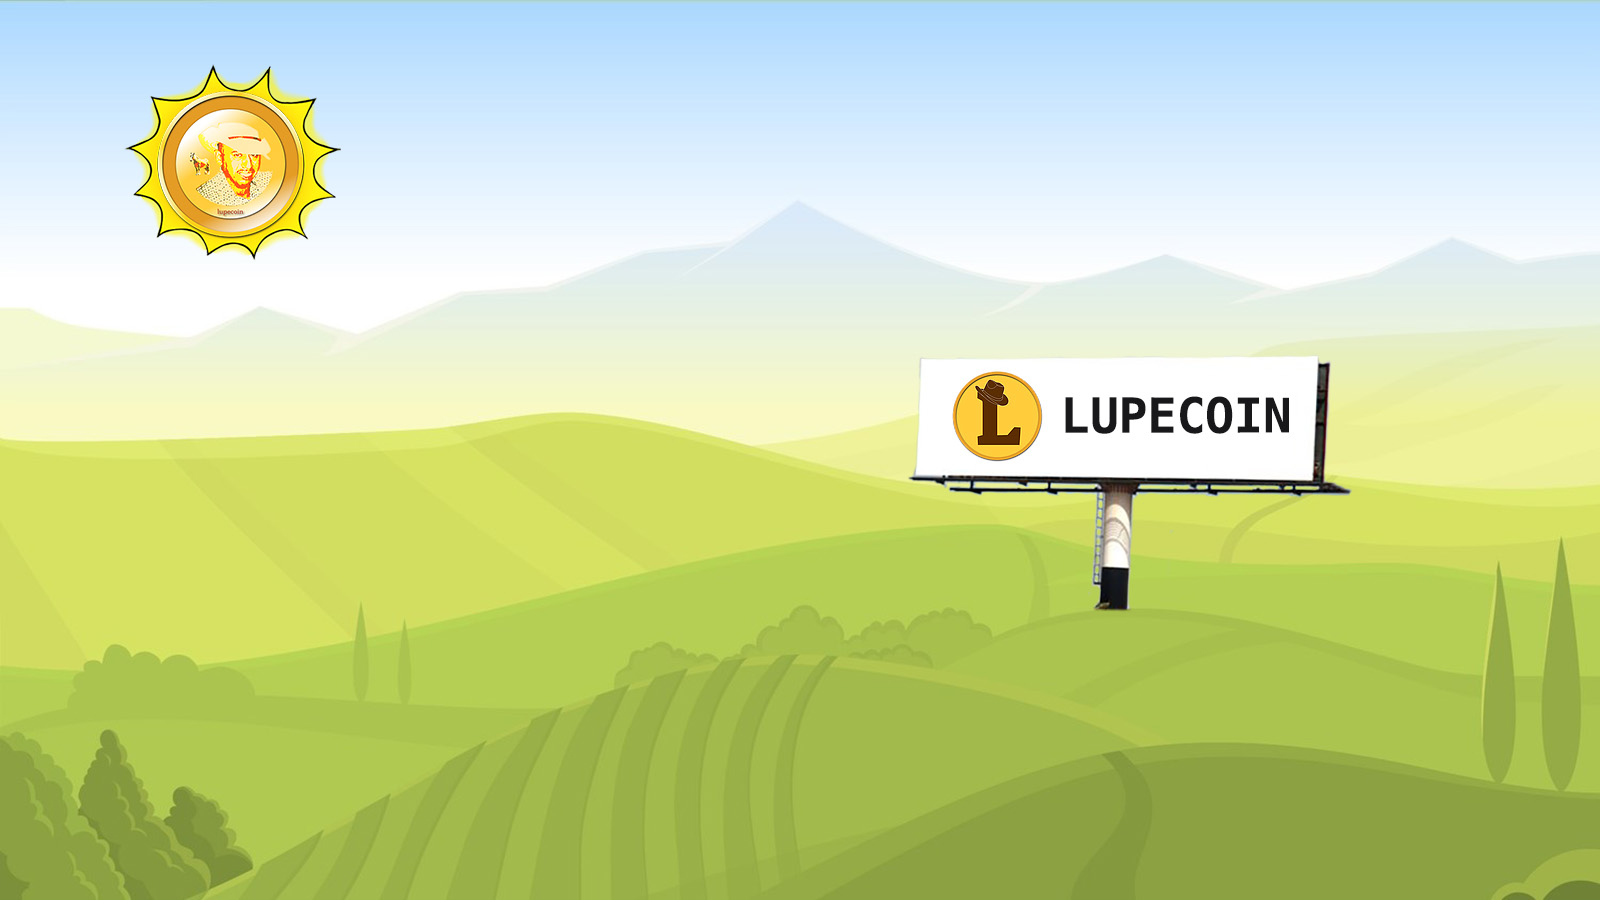 LupeCoin - Proof of Friendship